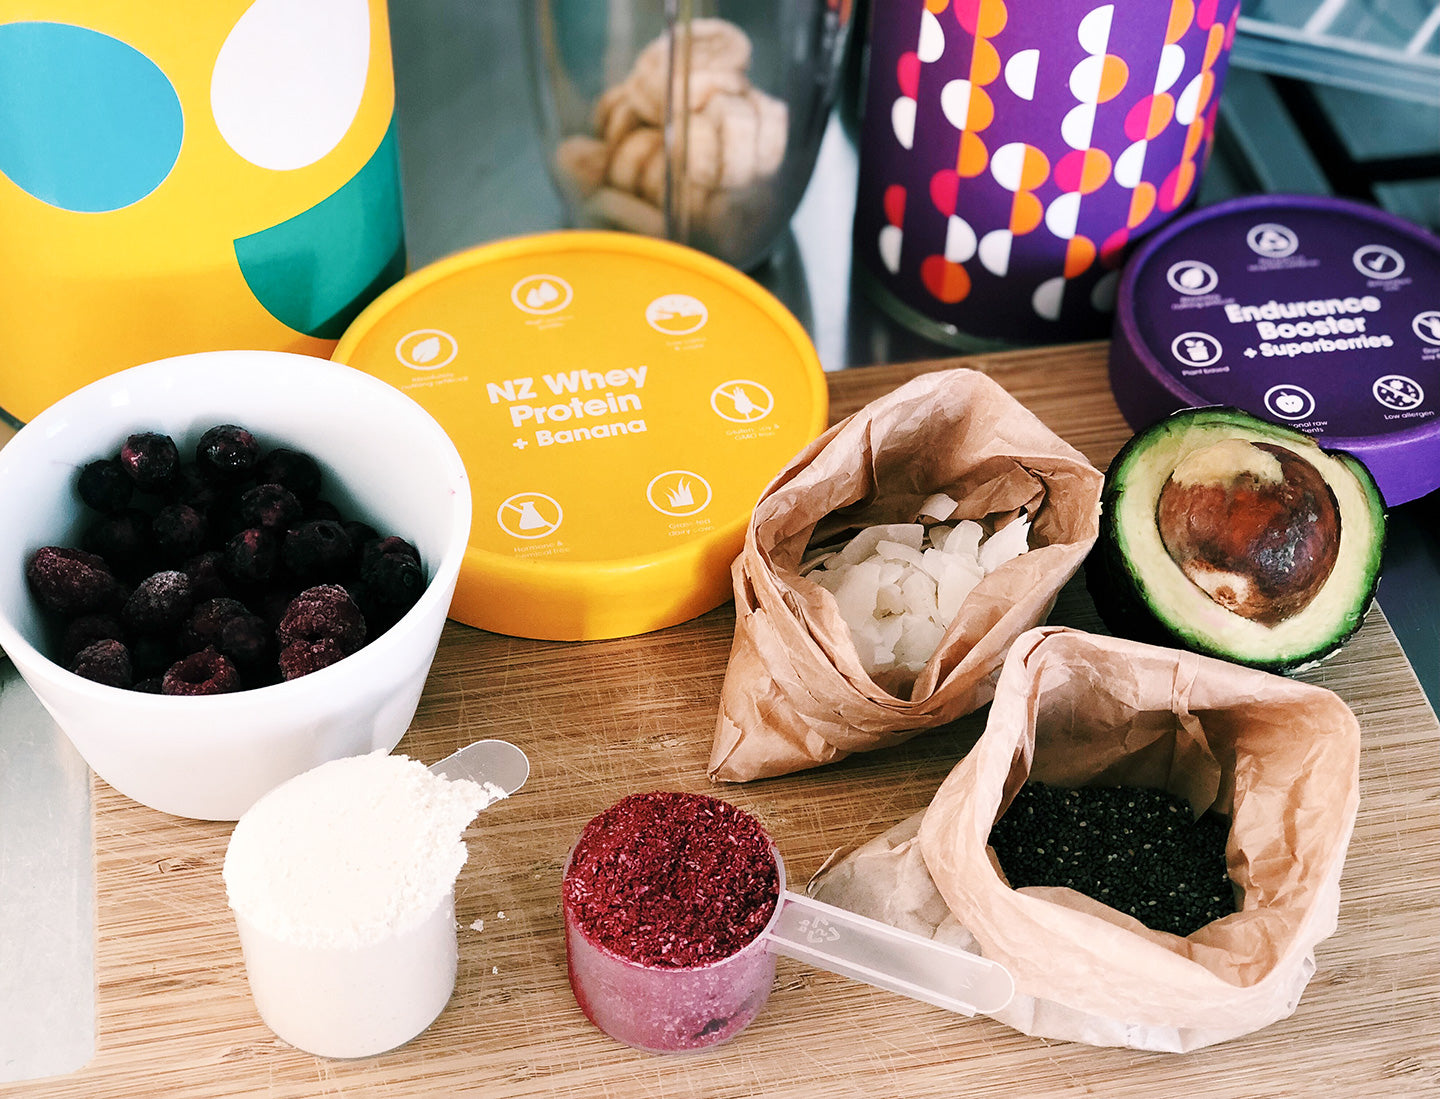 Ingredients for your post workout smoothie bowl.